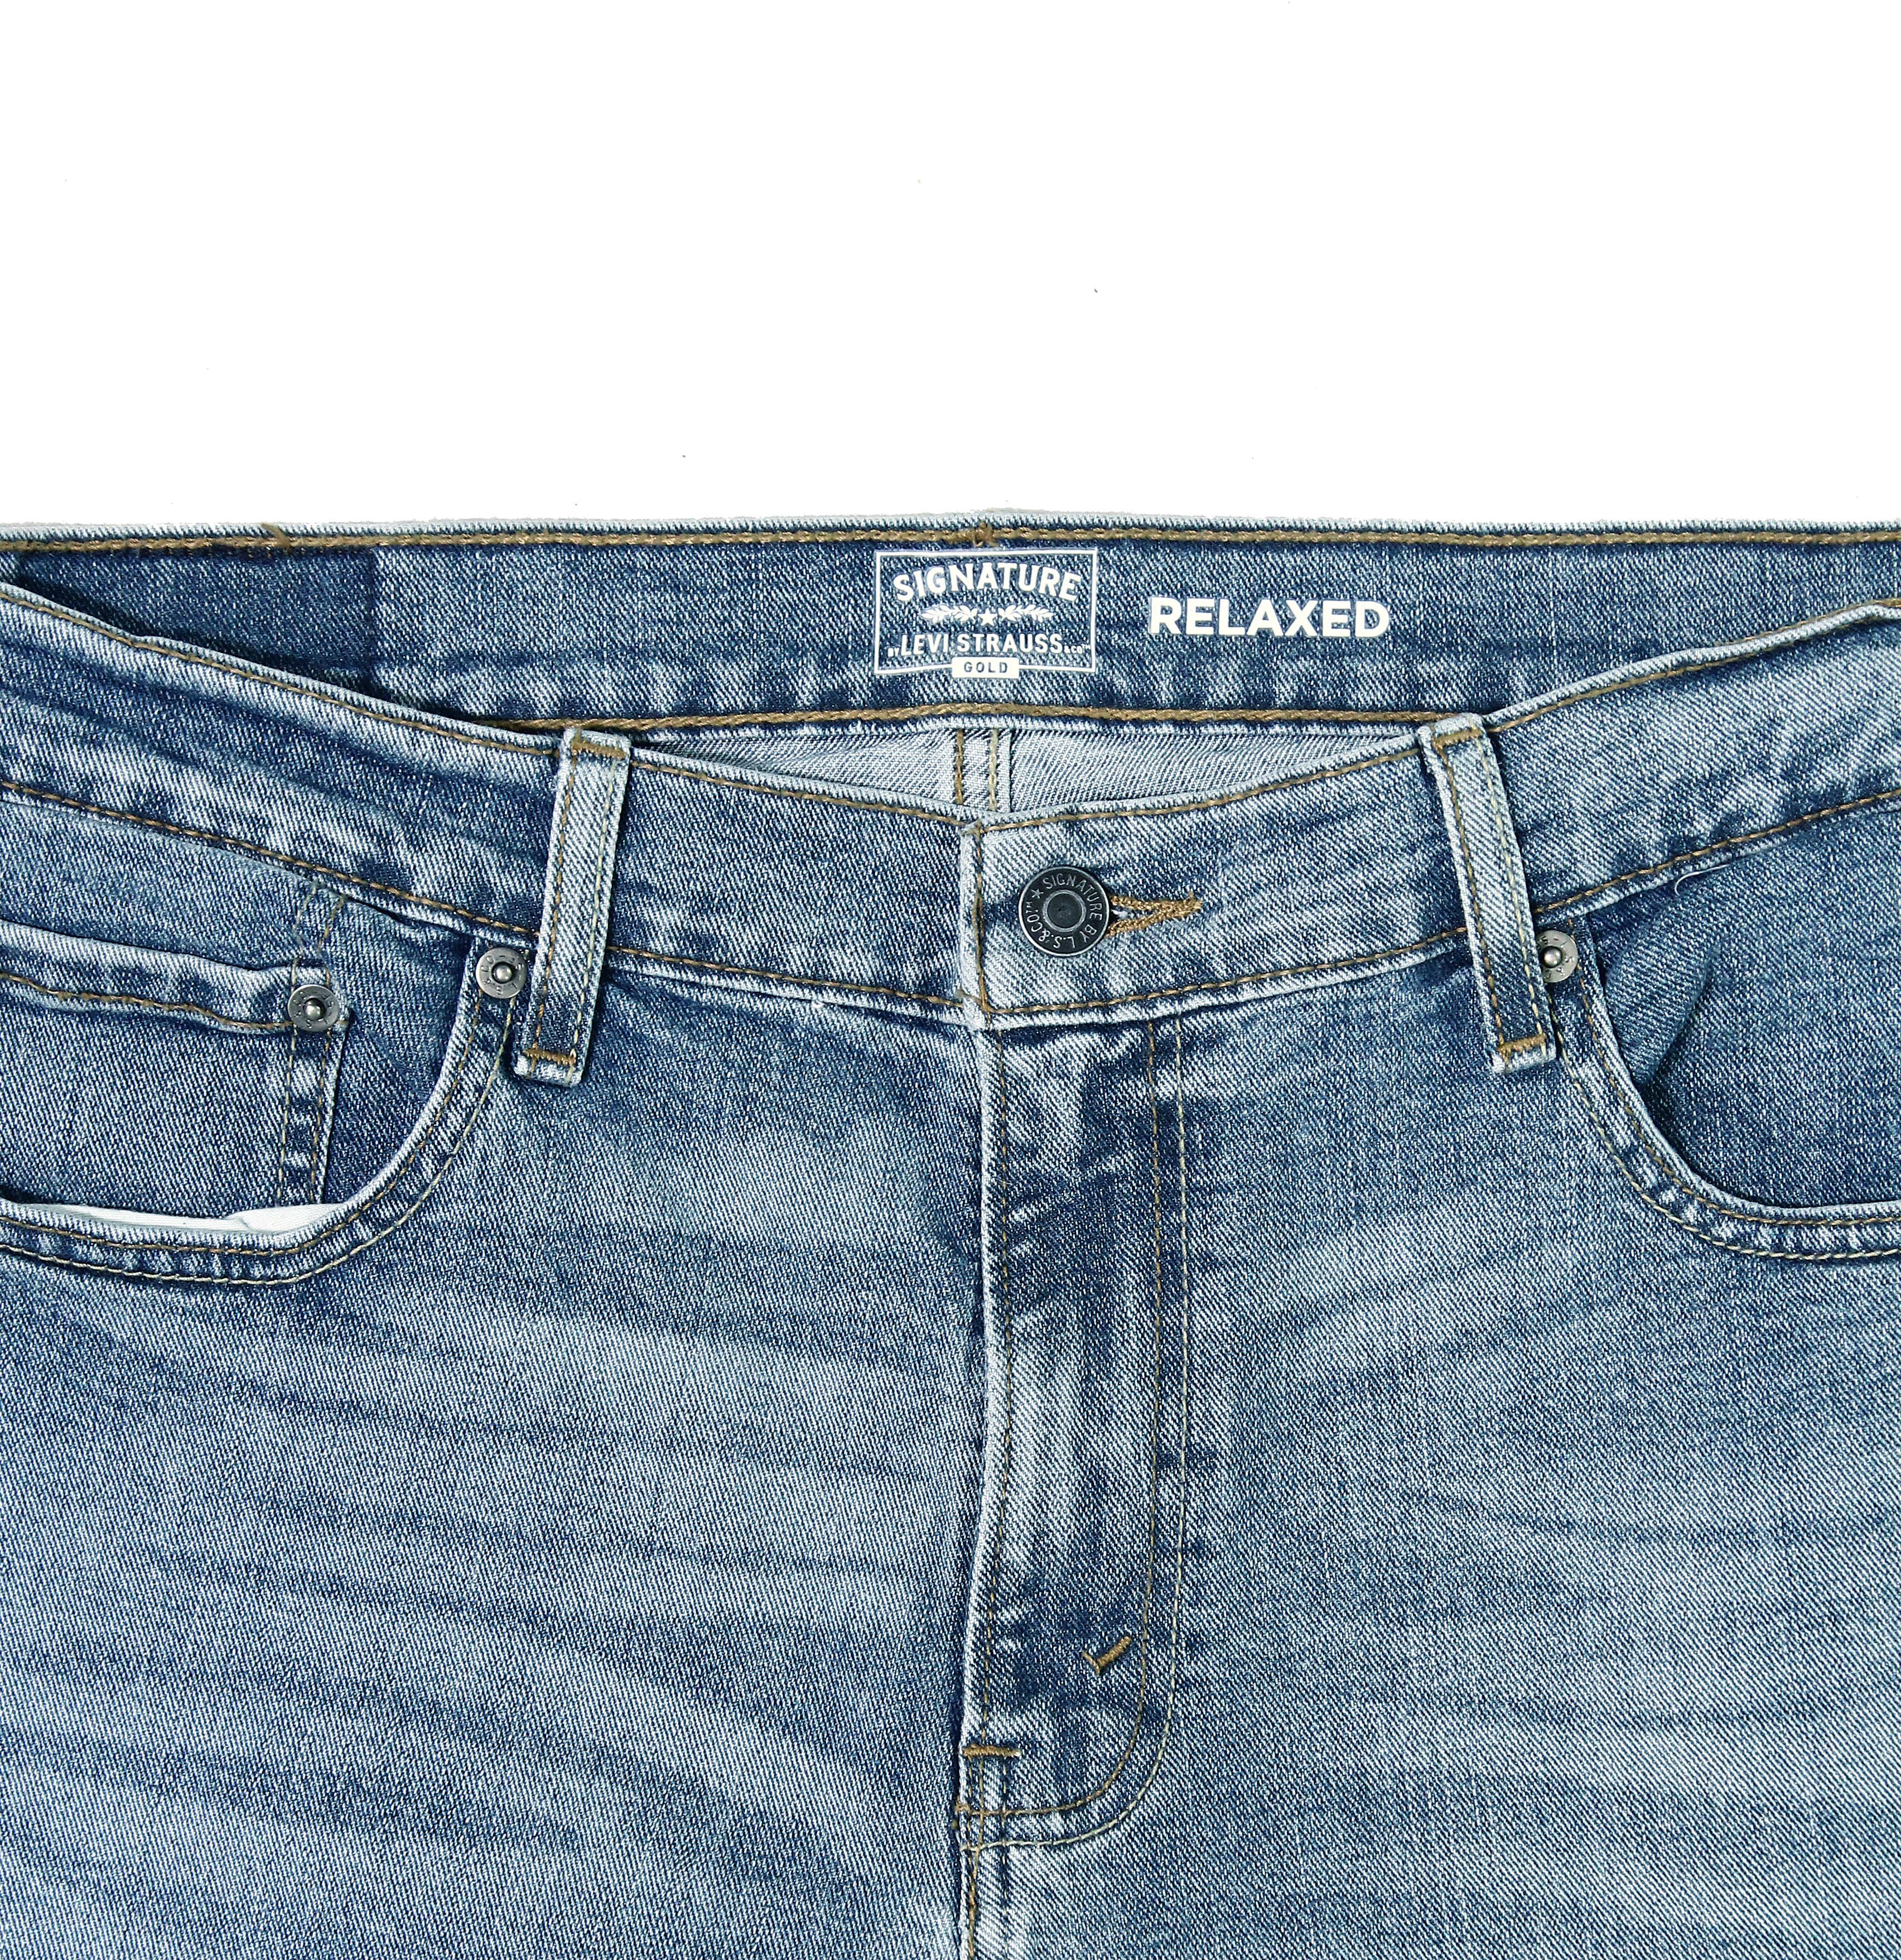 Levi-039-s-Jeans-Signature-Gold-by-Levi-Strauss-NEW-Titan-Blue-Men-Relaxed-Fit-Jeans thumbnail 5